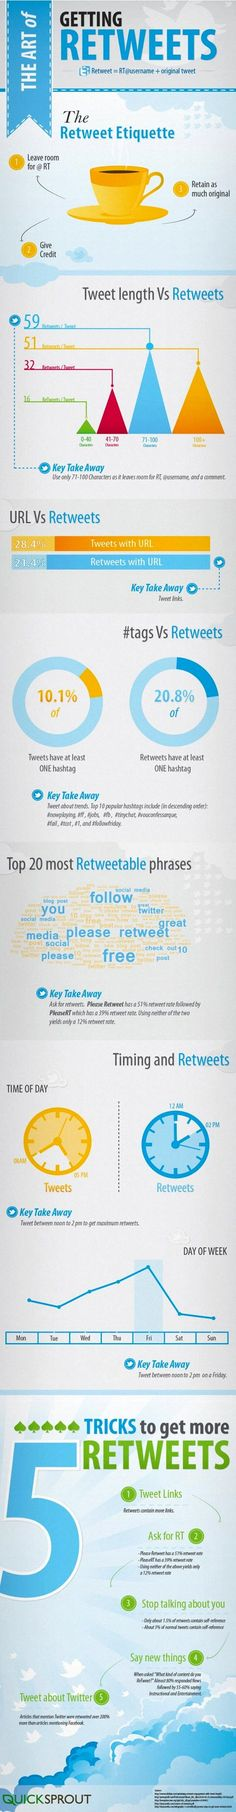 Twitter Chat Etiquette – 8 Tips To Success. http://socialmediarevolver.com/twitter-chat-etiquette-8-tips-to-success/